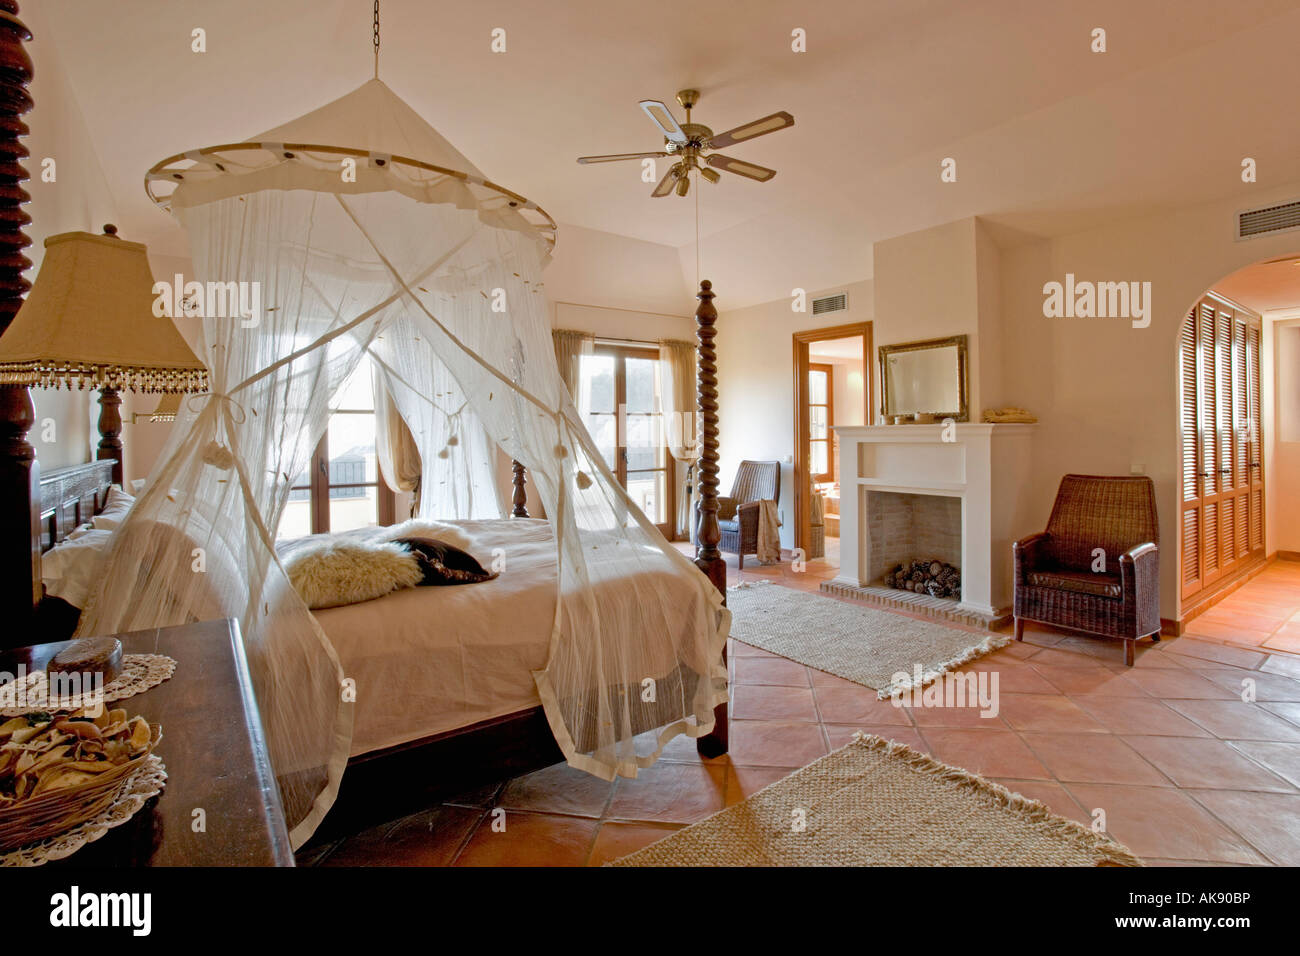 Mosquito Net Above Bed In Modern Spanish Bedroom With Traditional Furniture